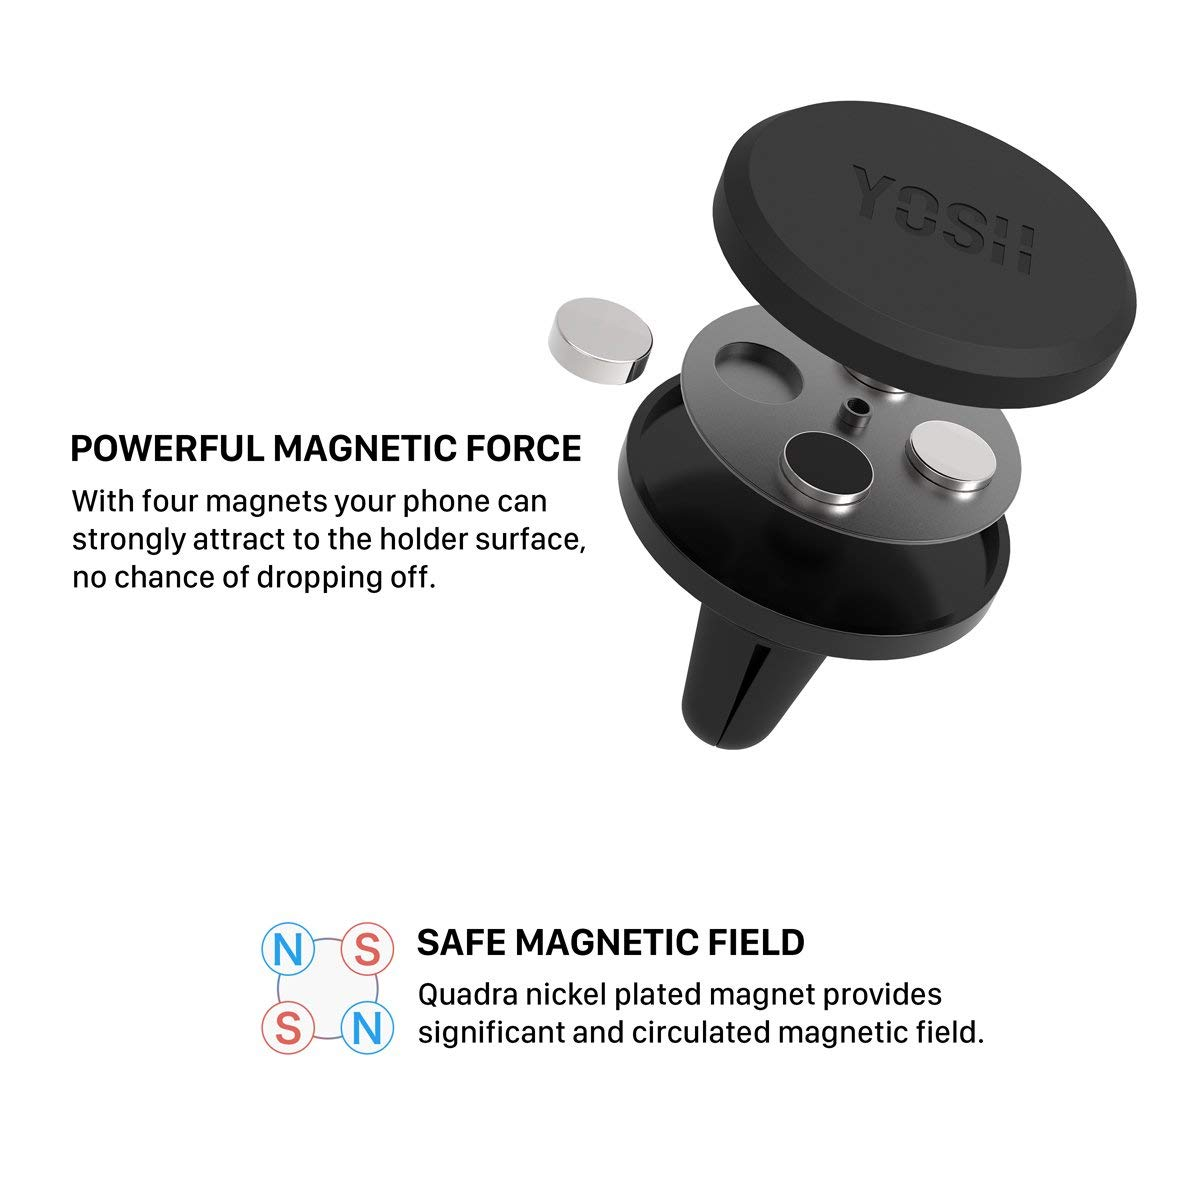 YOSH Magnetic Vent Mount Universal Car Phone Mount Magnets Phone Car Mount  Holder Vent Car Cradle Compatible for iPhone Xs MAX/XS/XR/X/8/7/6/6S Plus